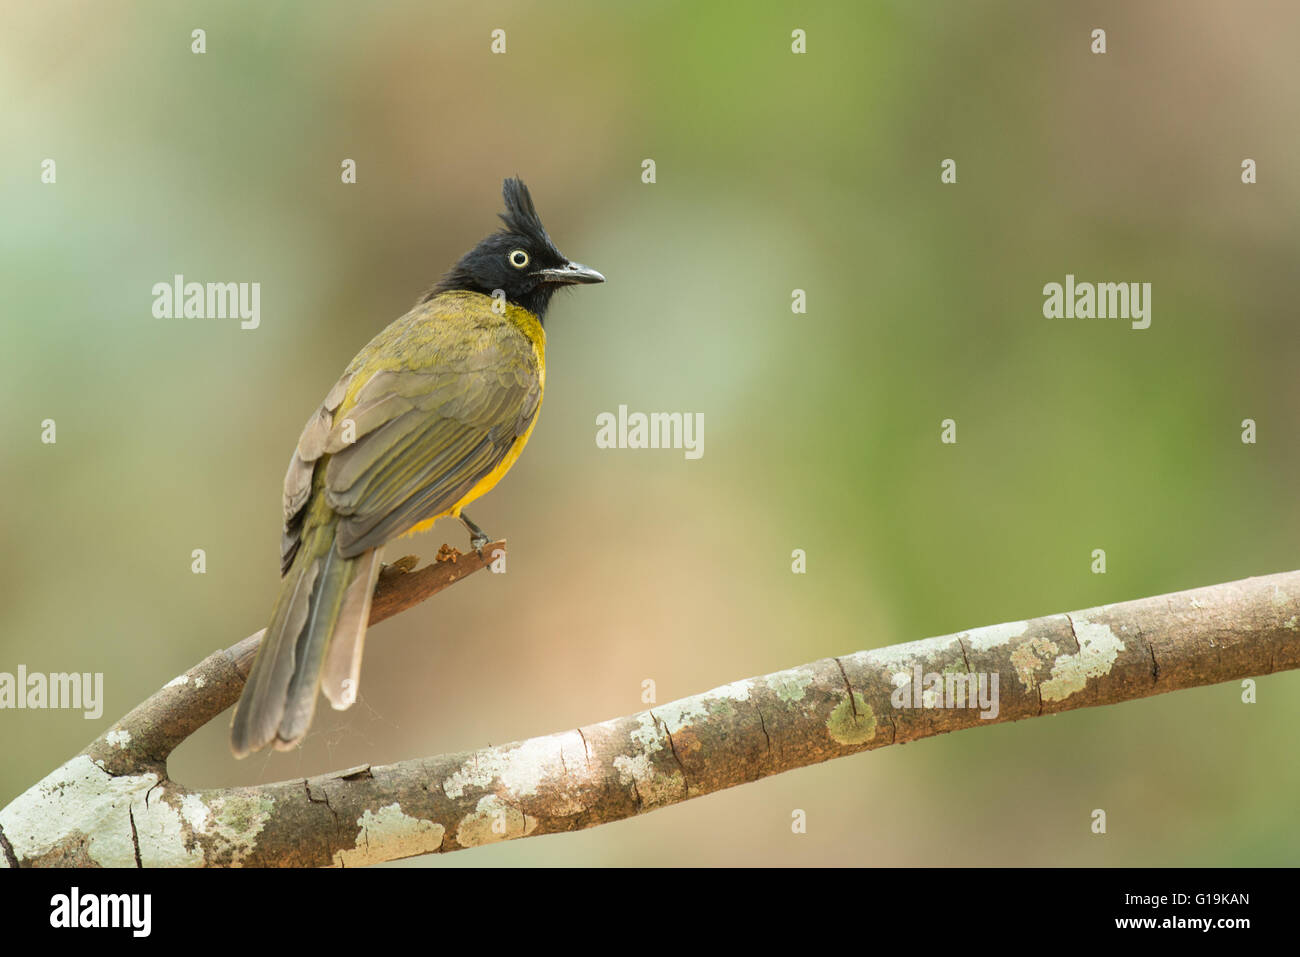 The black-crested bulbul (Pycnonotus flaviventris) is a member of the bulbul family of passerine birds. - Stock Image